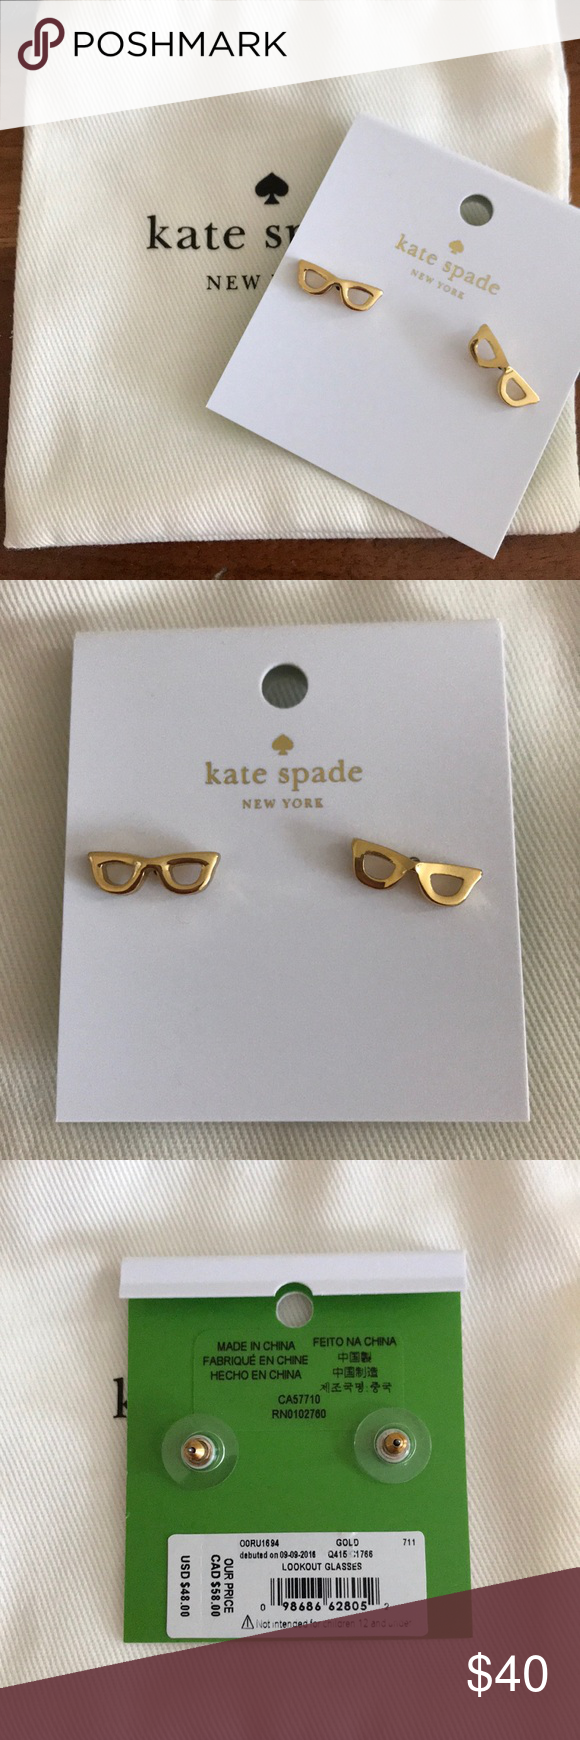 d423254b8d99e NWT Kate Spade Lookout Glasses Earrings New with tags Kate Spade ...